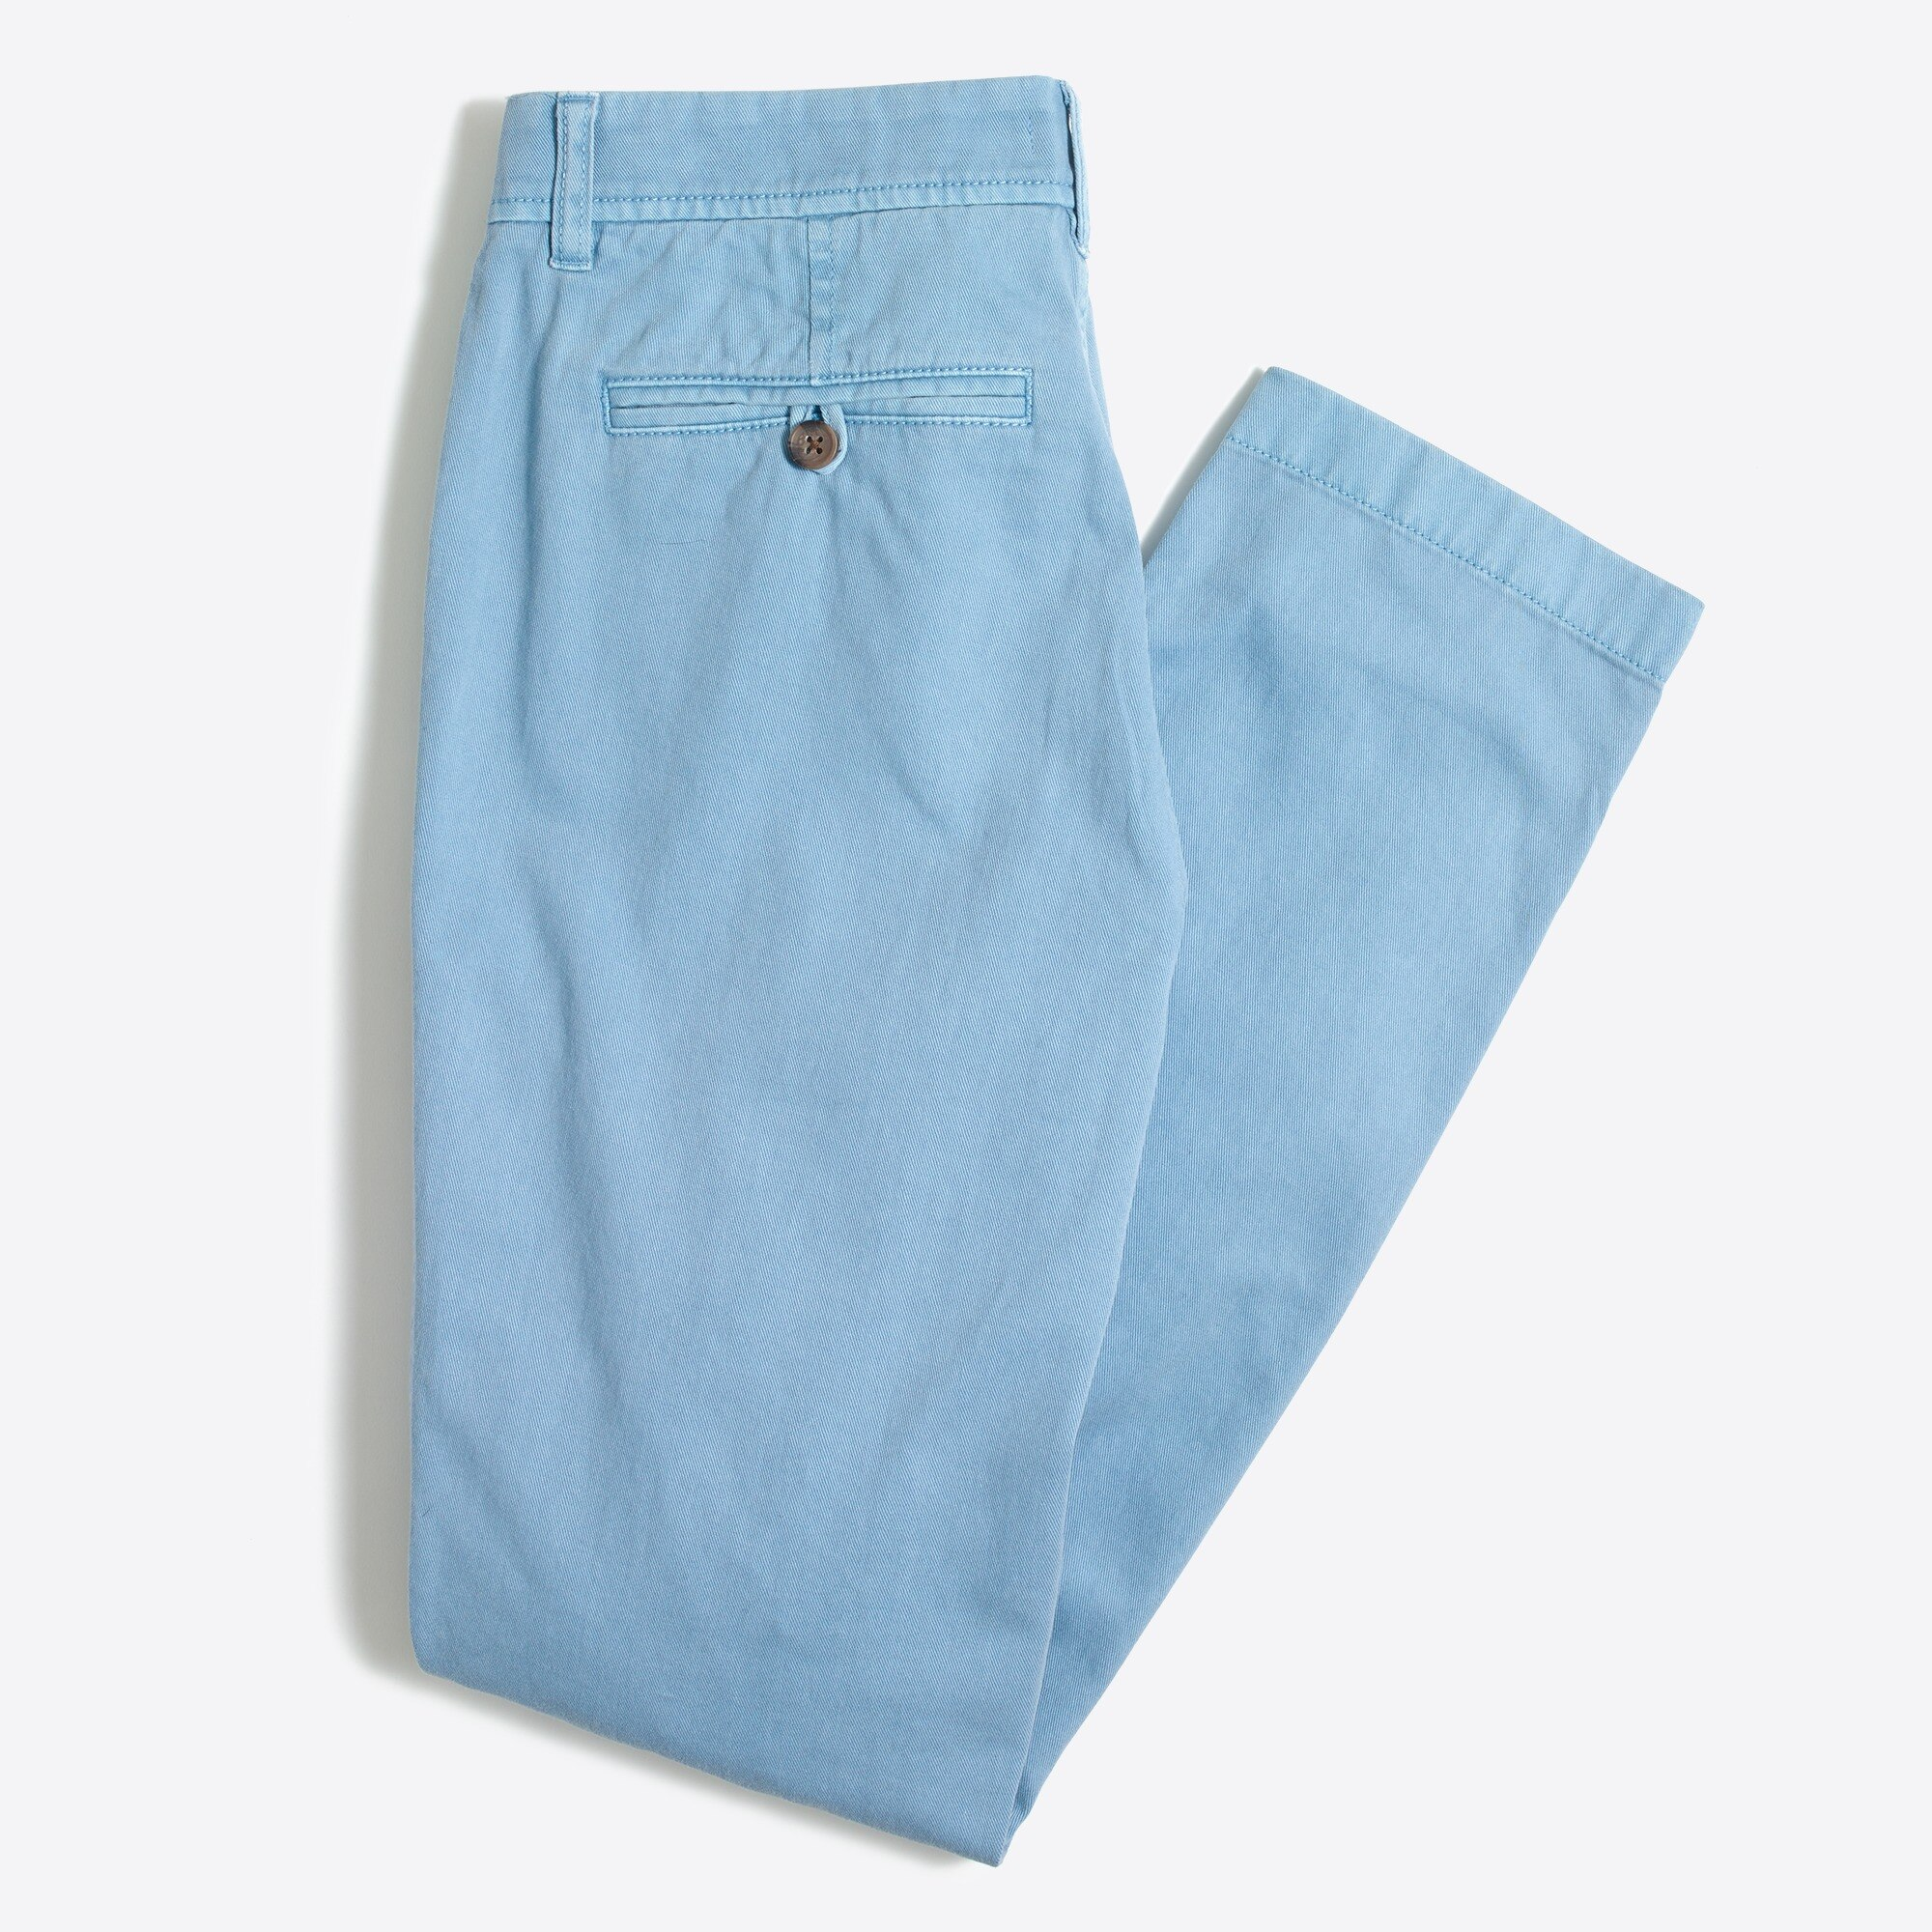 Image 2 for Sunwashed slim chino